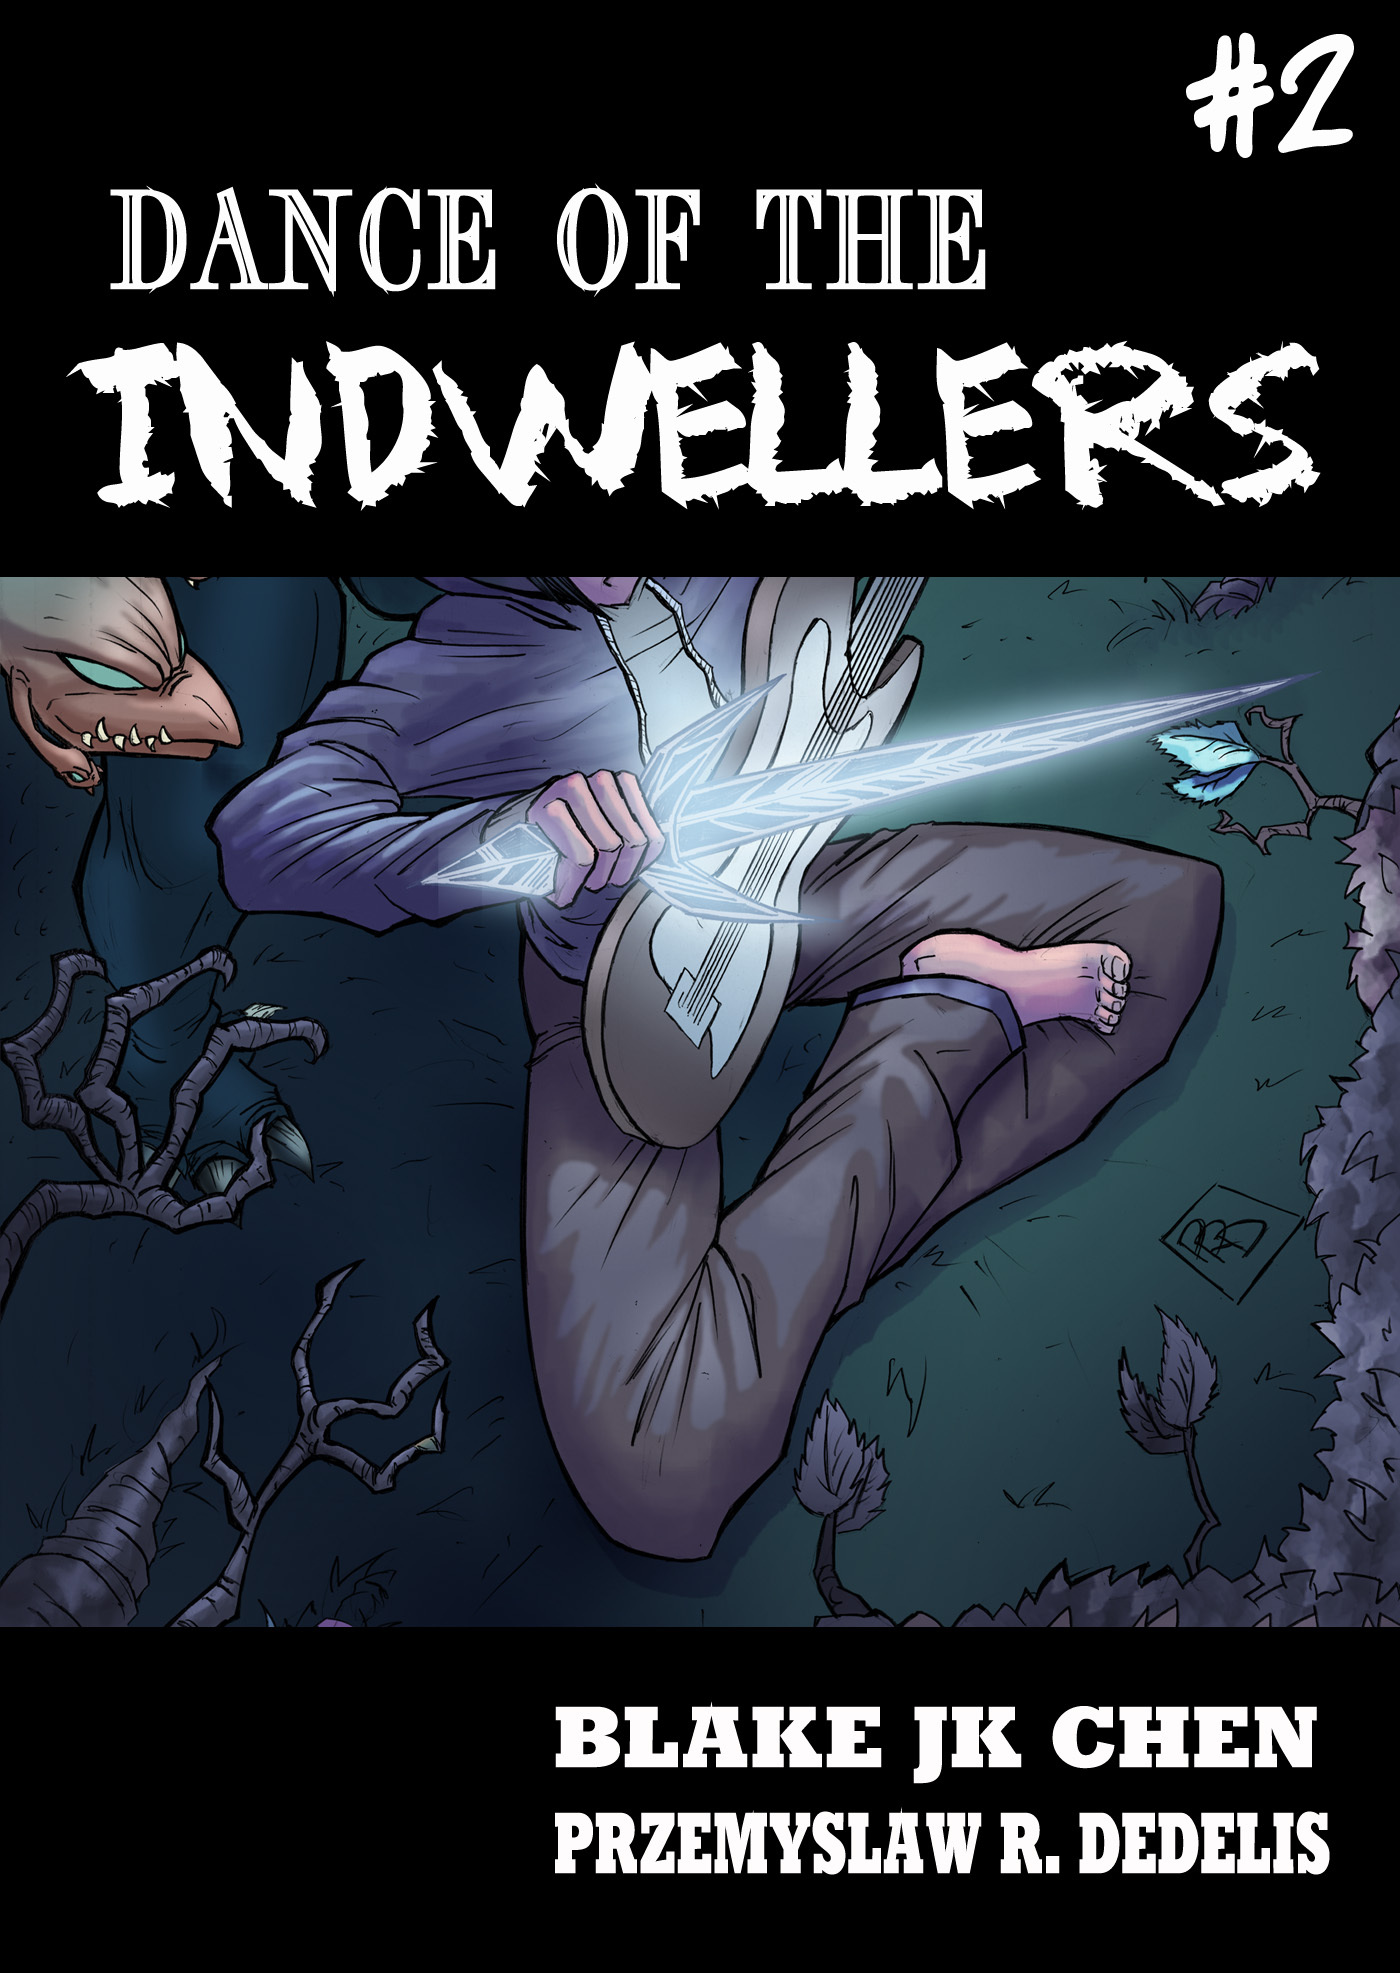 Dance of the Indwellers #2